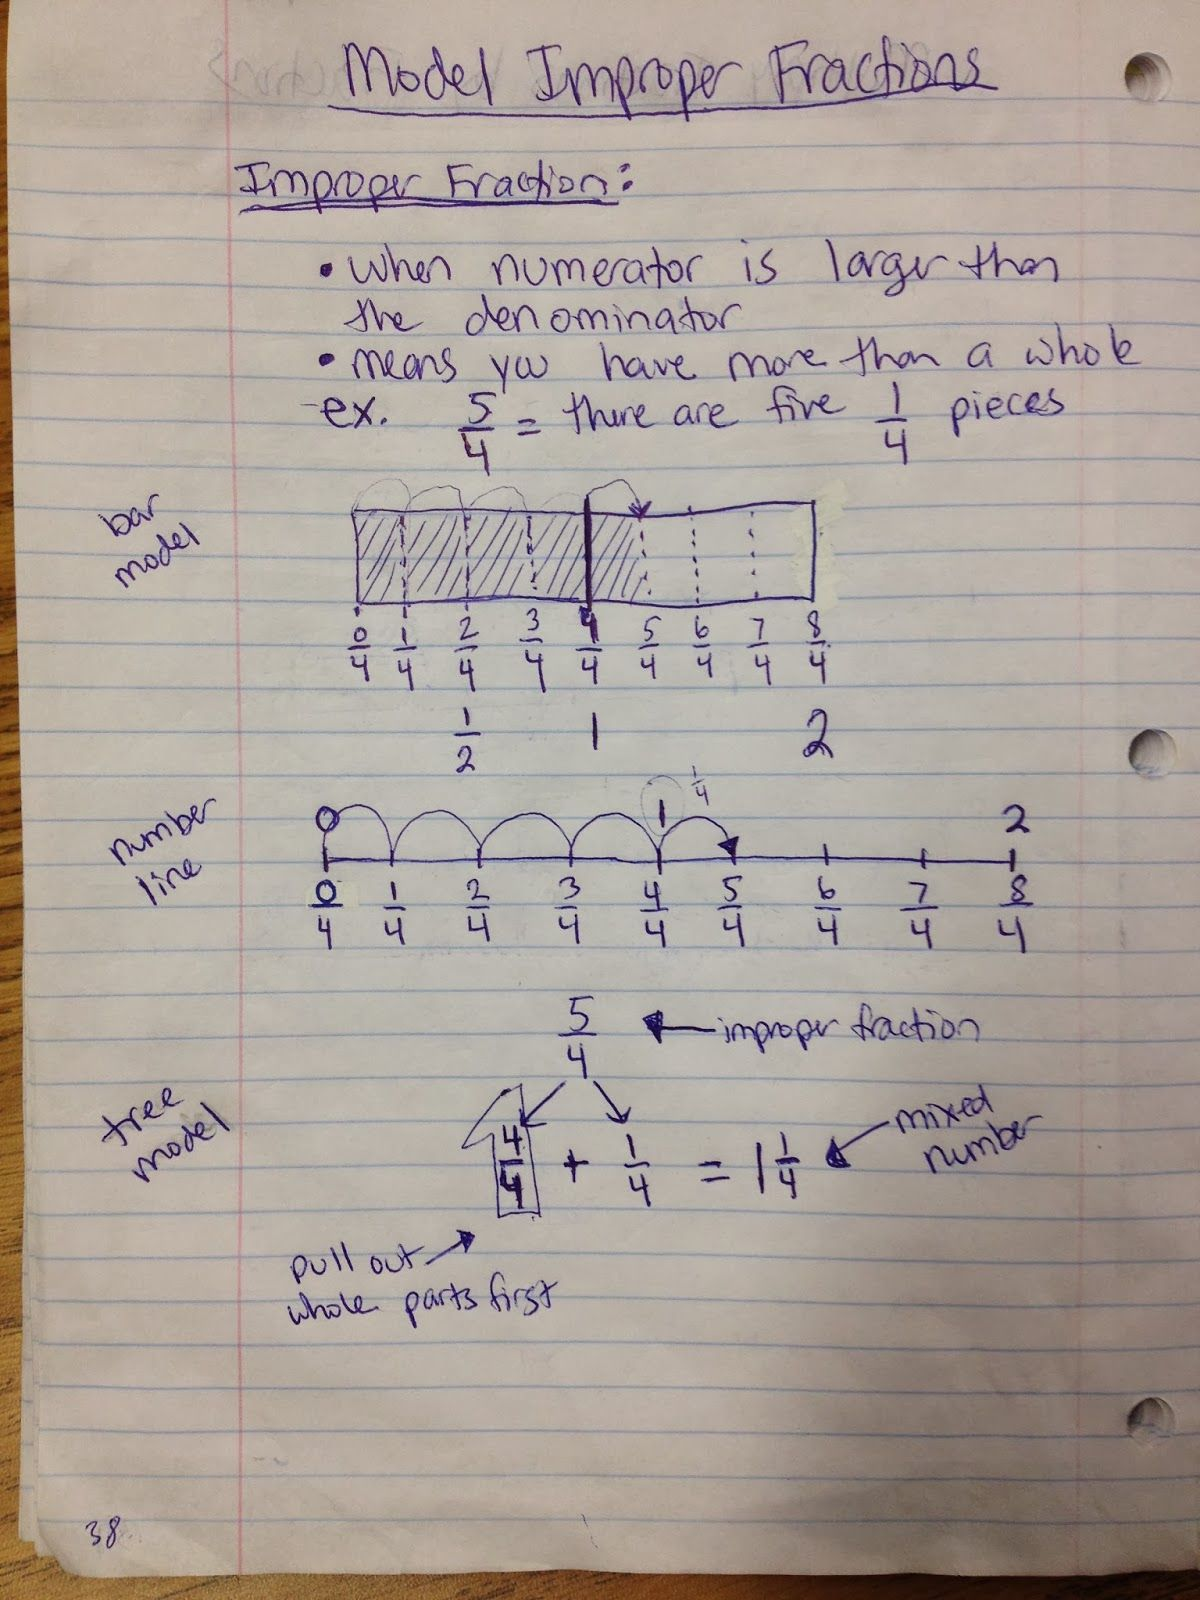 Model Improper Fractions Using Bar Model Amp Number Line Decompose Improper Fractions To Find